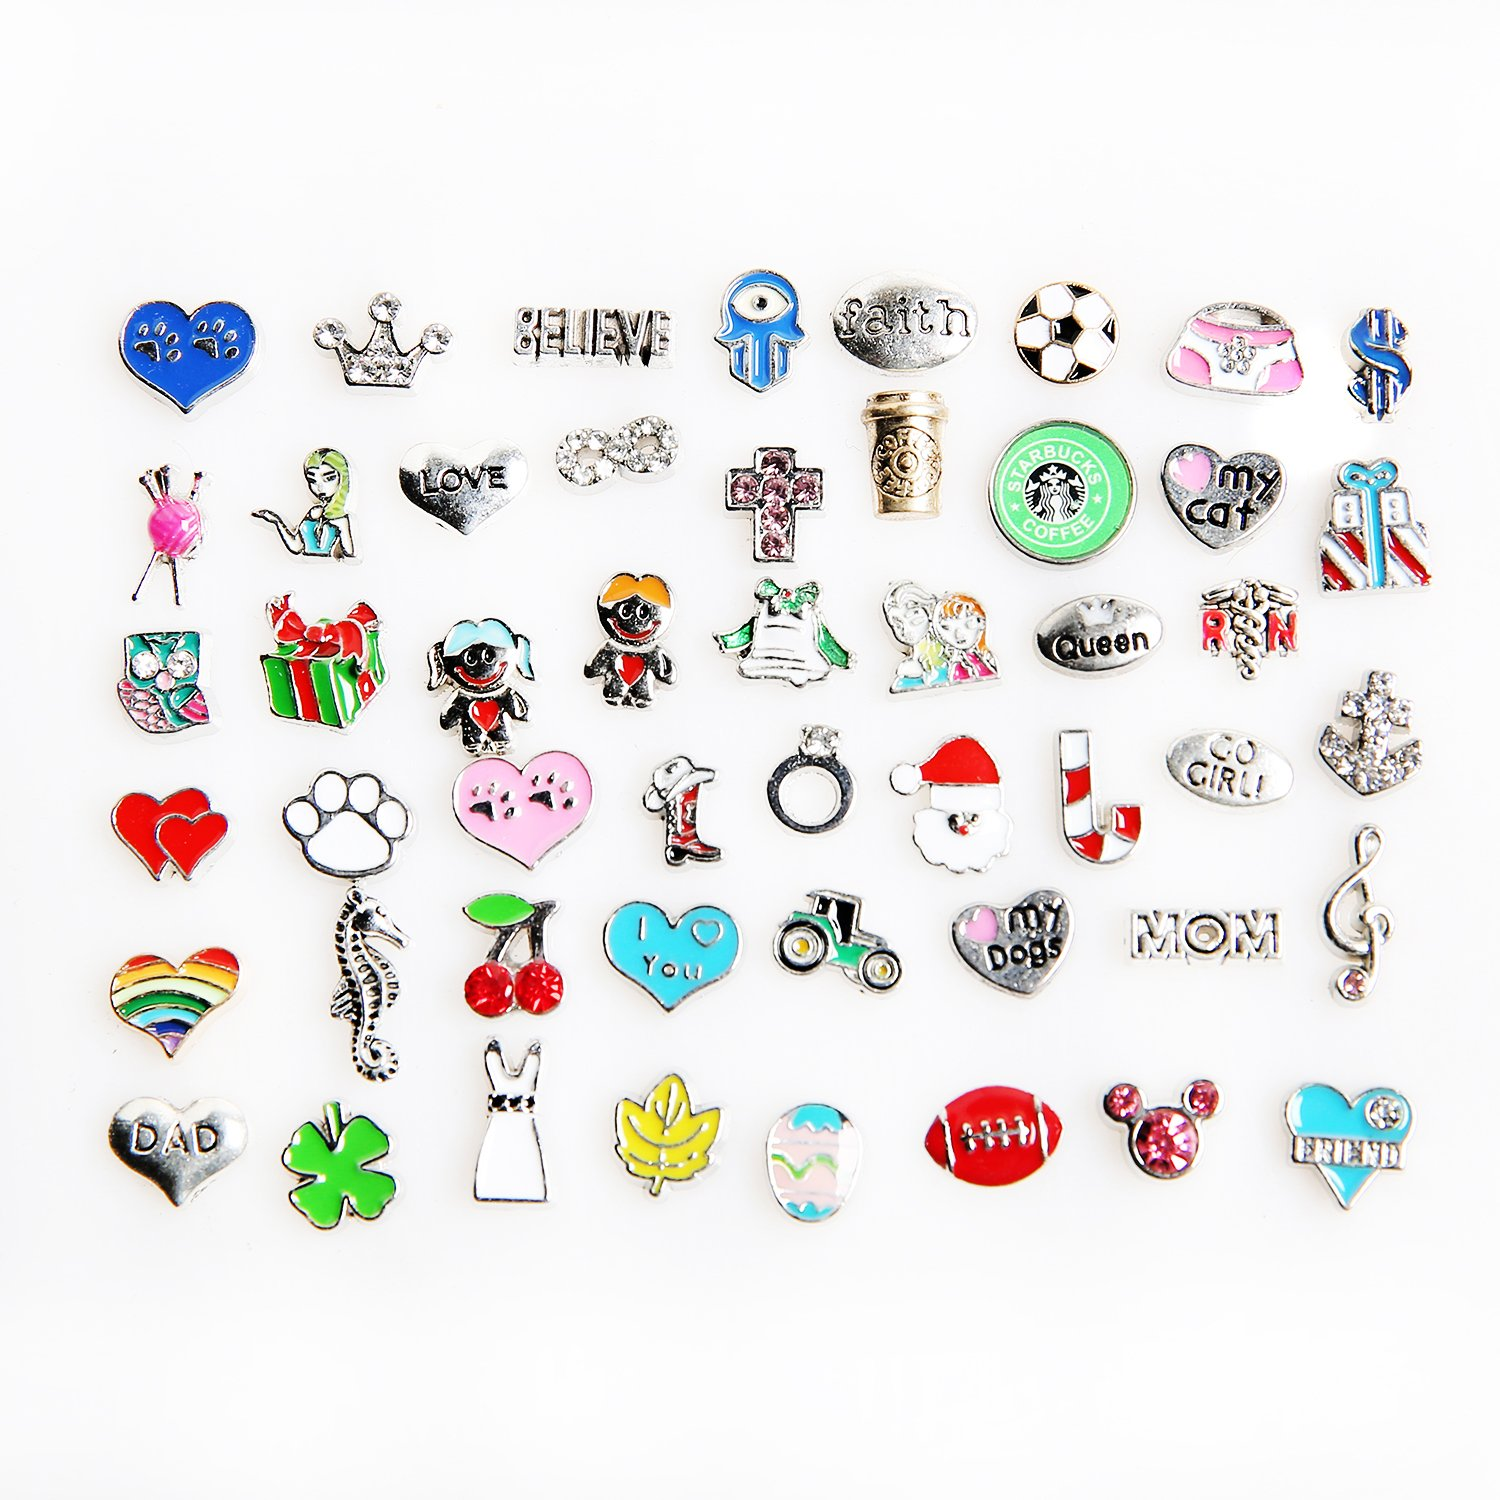 a13f4f182 Amazon.com: 50 Pcs Mixed Random Floating Charms for Glass Living Memory  Lockets Origami Owl Lockets DIY Wholesale Gold and Silve By Cinter.